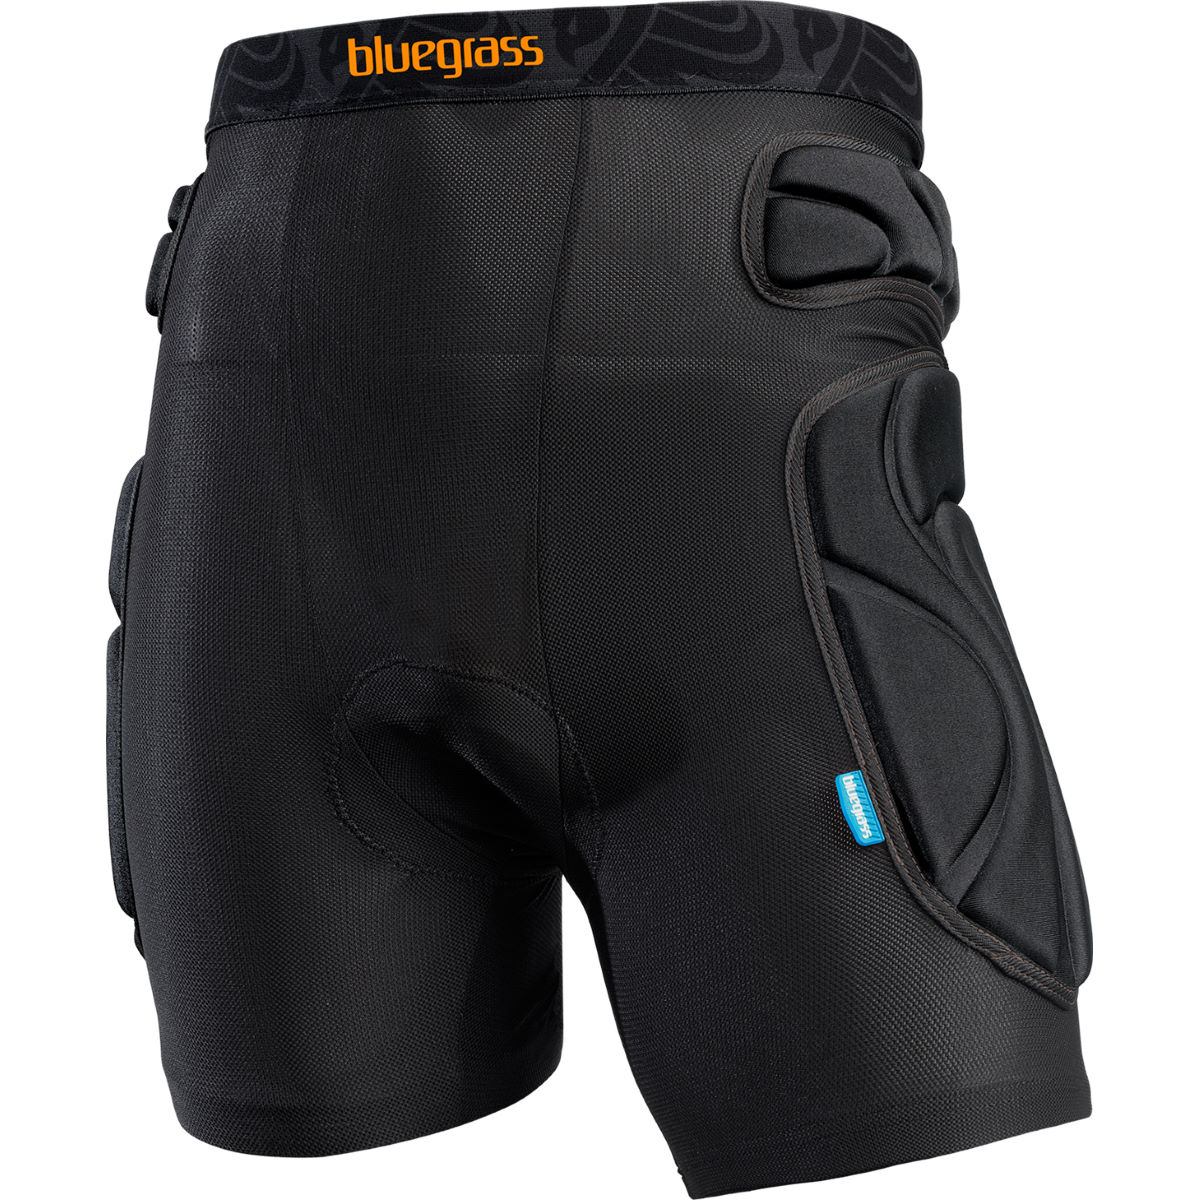 Bluegrass Wolverine Protective MTB Shorts - Pantalones protectores